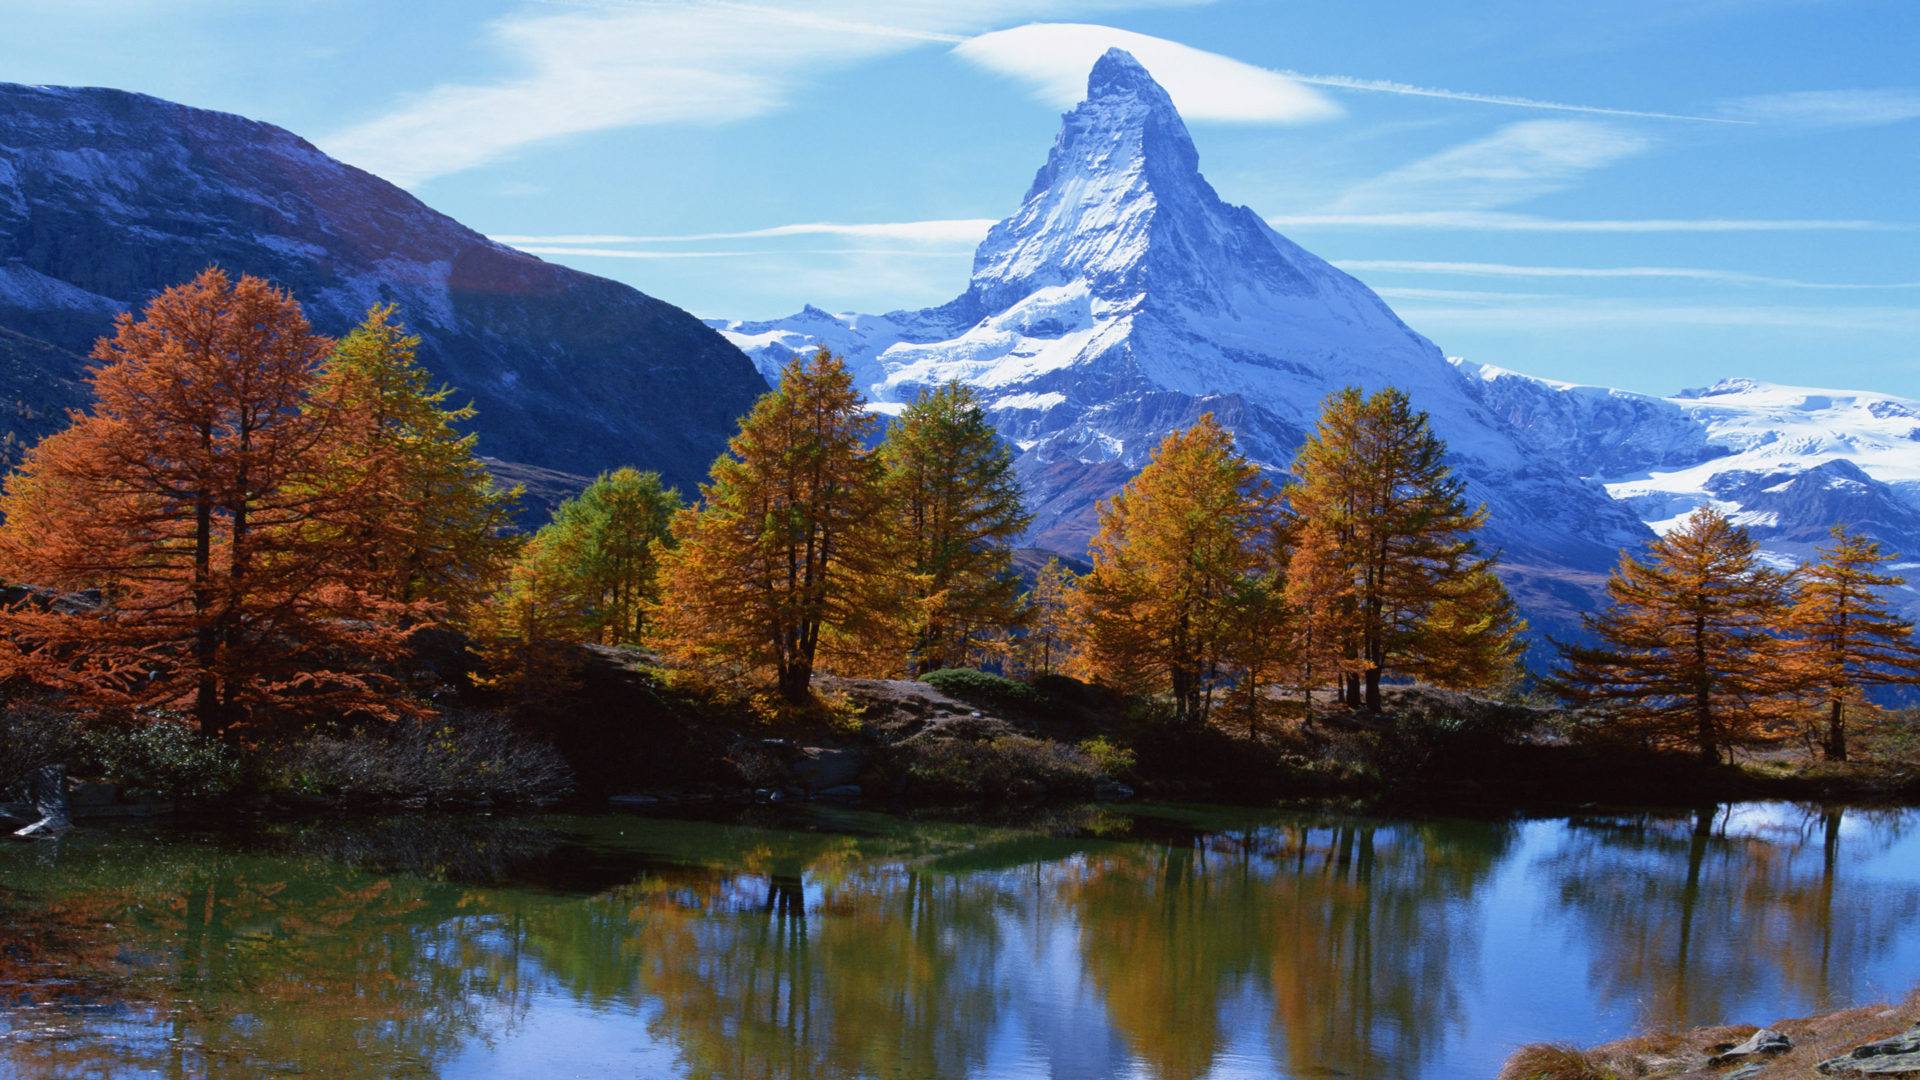 Red Fall Leaves Iphone Wallpaper Landscape Mountain Rocky Alpine Peak With Snow Autumn